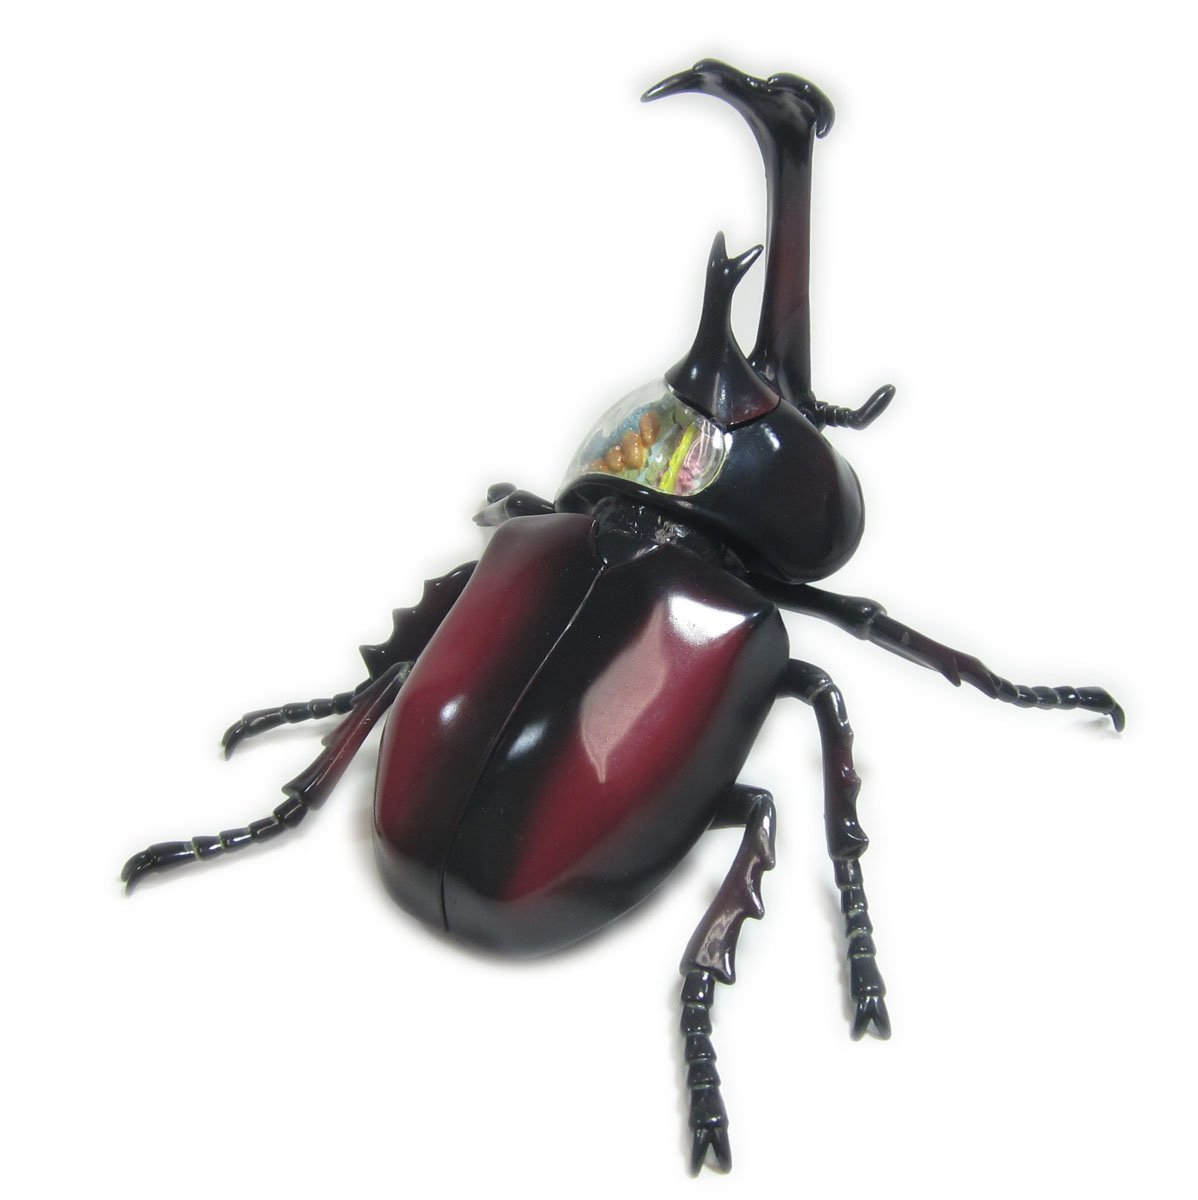 No.06 beetle anatomy model Skynet three-dimensional puzzle 4D VISION ...